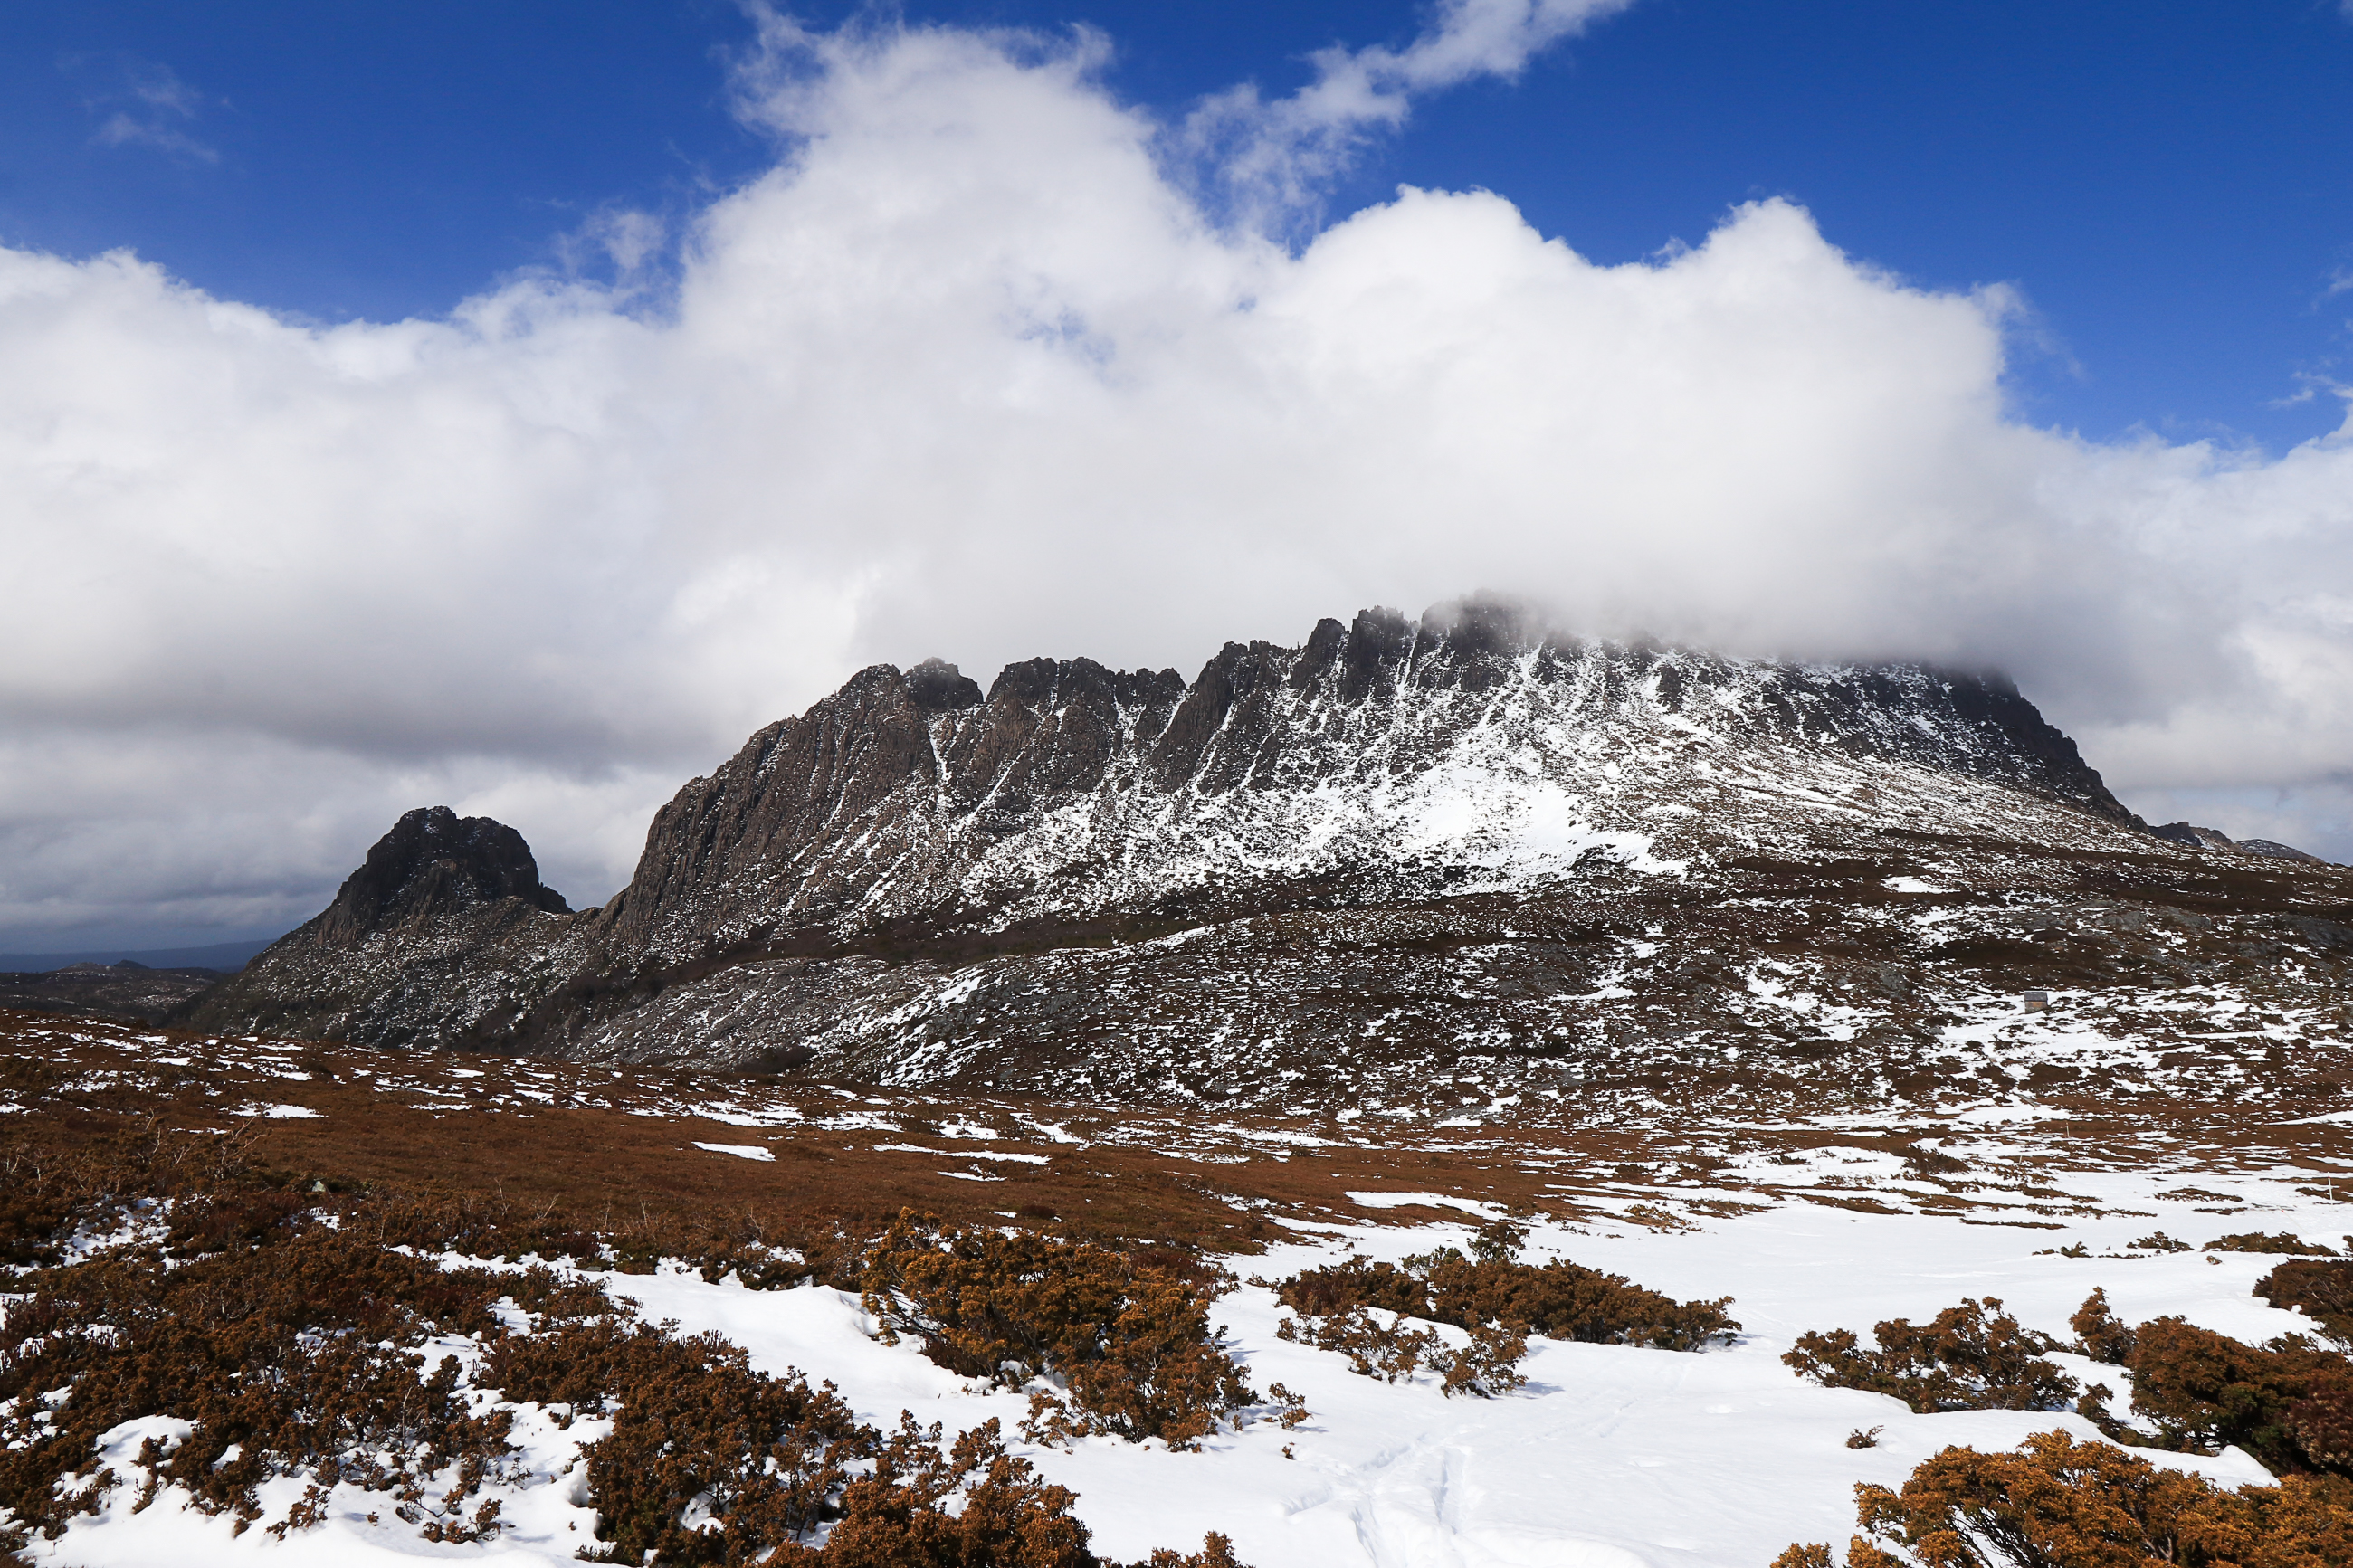 Iconic mountain holds on to snow, blue sky beyond